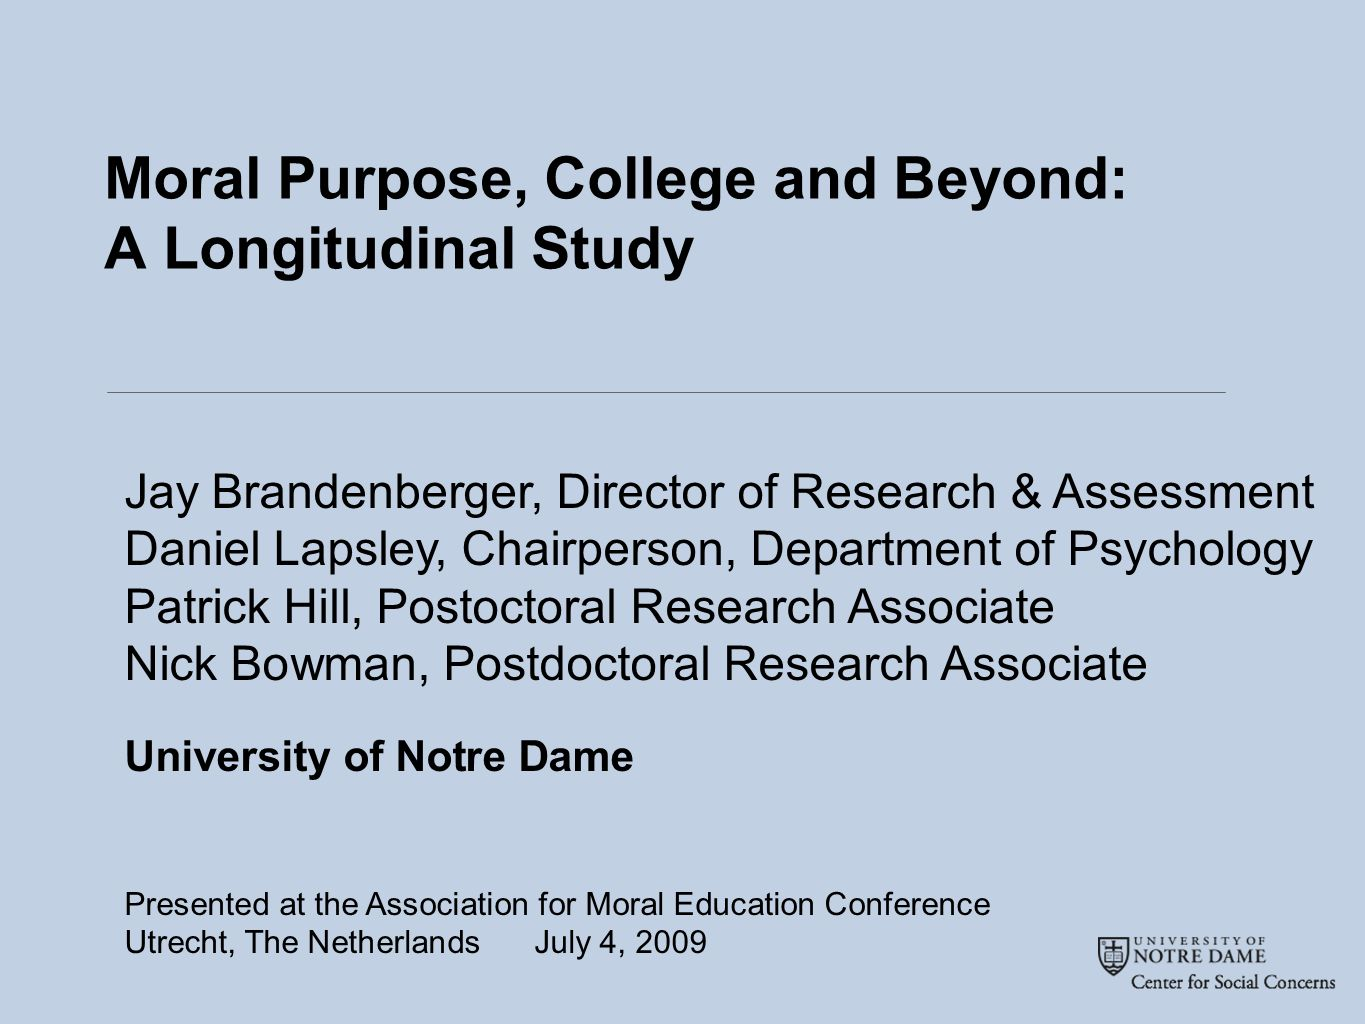 Moral Purpose, College and Beyond: A Longitudinal Study Jay Brandenberger, Director of Research & Assessment Daniel Lapsley, Chairperson, Department of Psychology Patrick Hill, Postoctoral Research Associate Nick Bowman, Postdoctoral Research Associate University of Notre Dame Presented at the Association for Moral Education Conference Utrecht, The Netherlands July 4, 2009